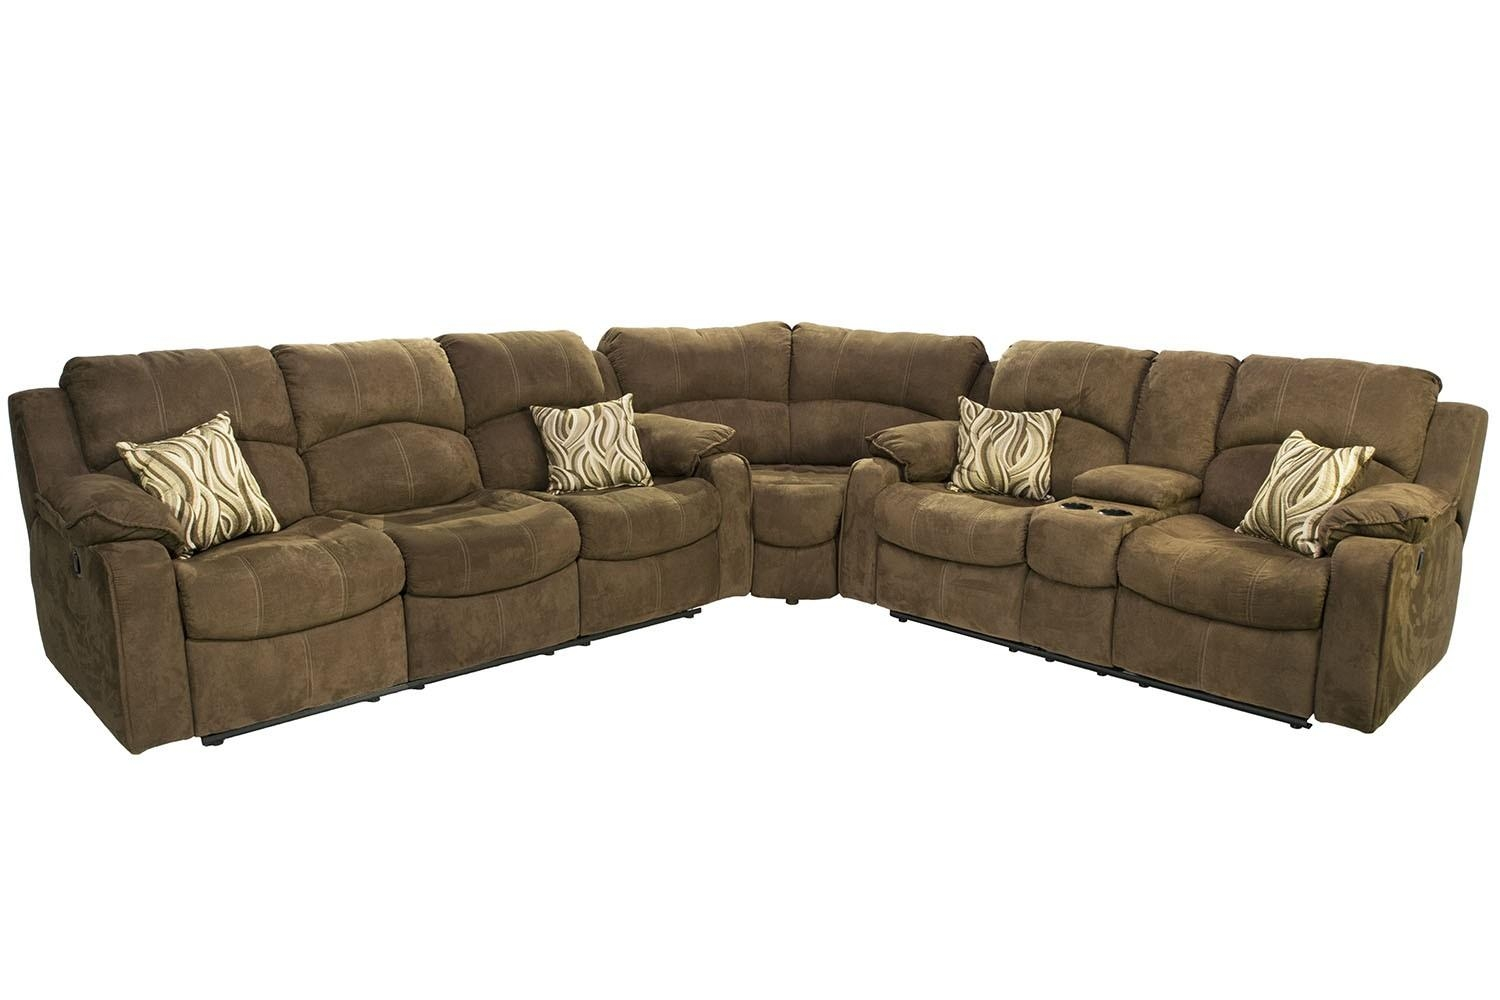 Tornado Reclining Sofa & Reclining Console Loveseat Sectional In Throughout Media Sofa Sectionals (Image 20 of 20)